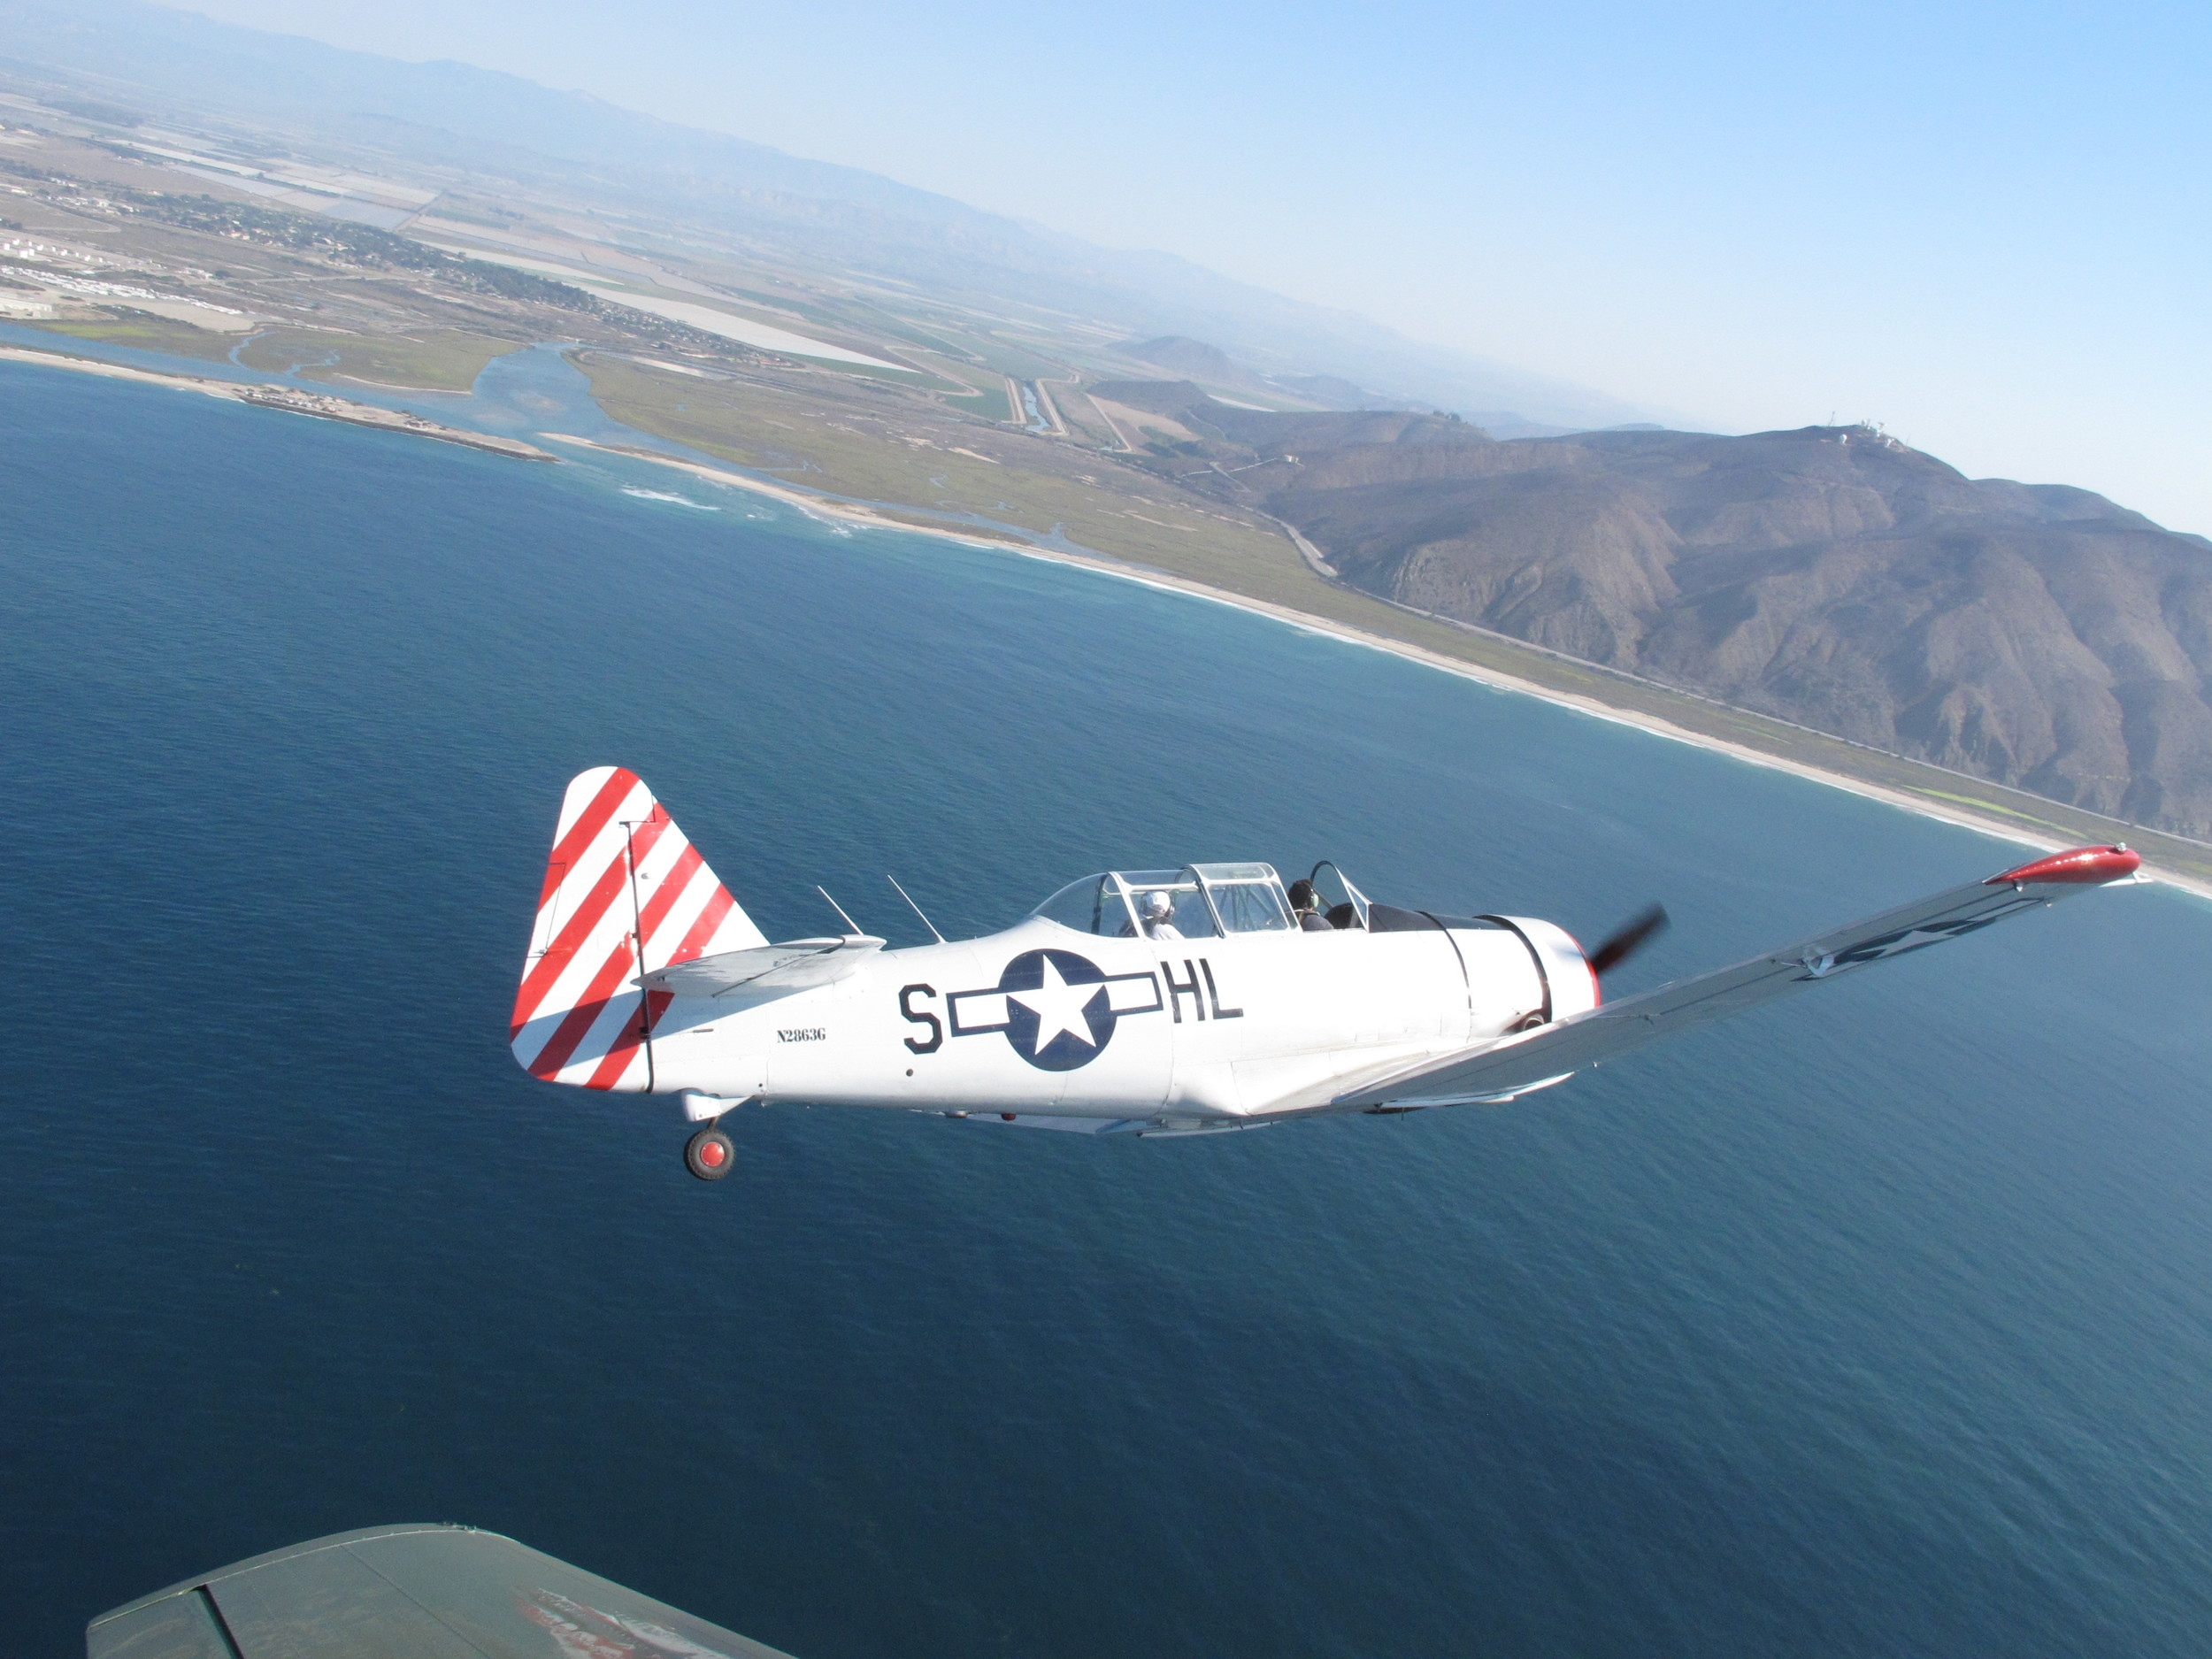 The Condors approaching for a flyover during the ceremony at NBVC - Pt. Mugu